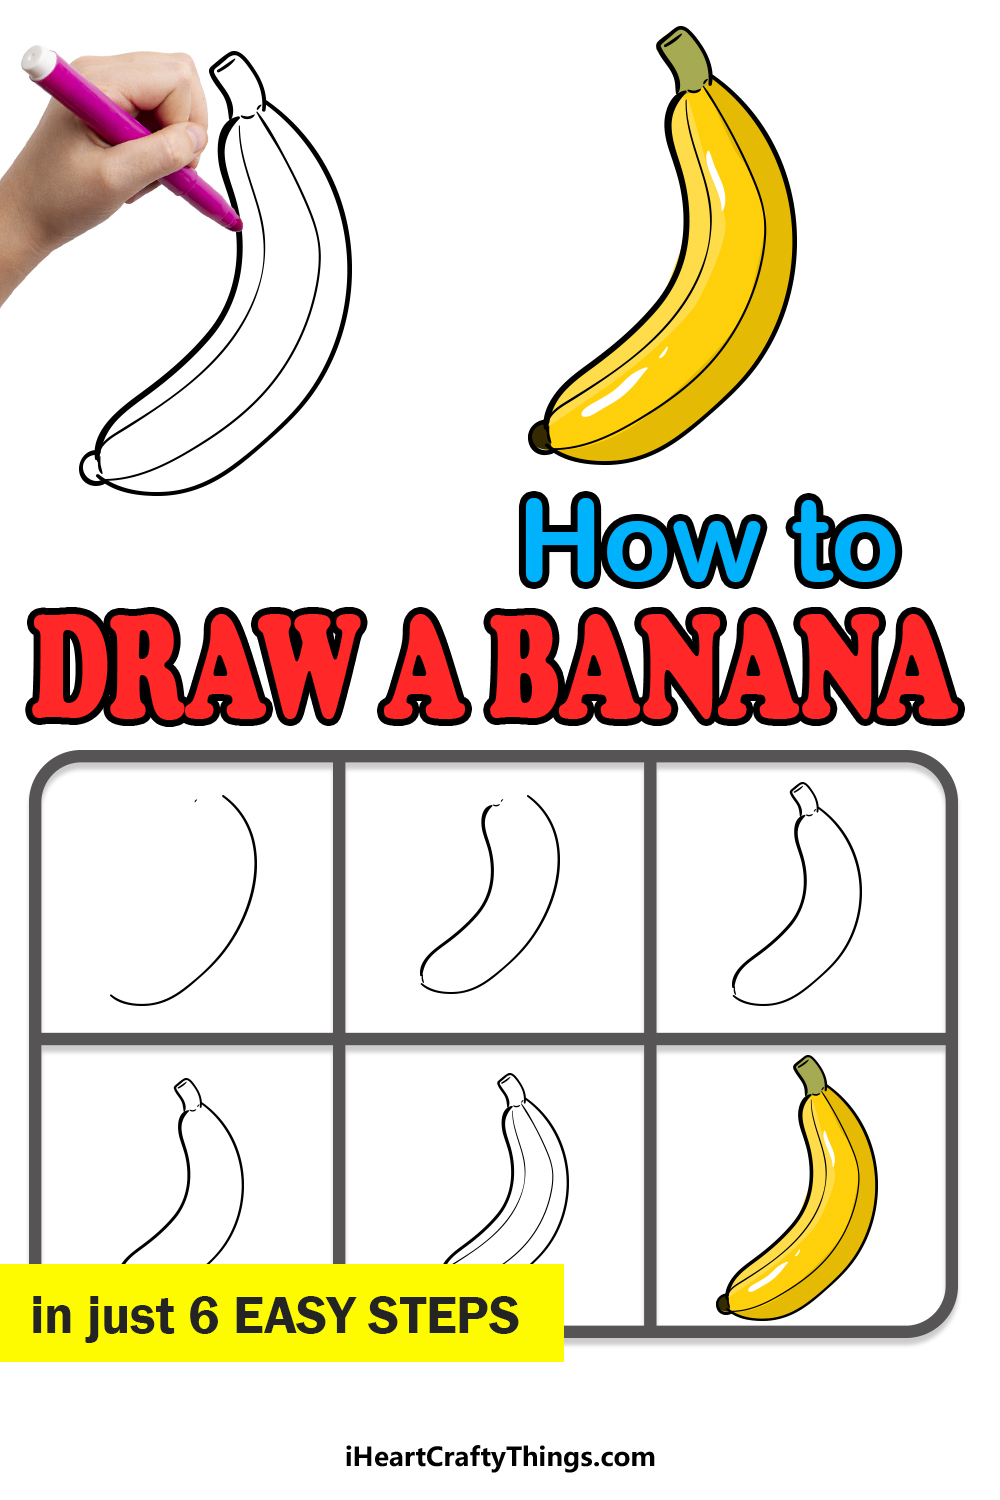 how to draw a banana in 6 easy steps